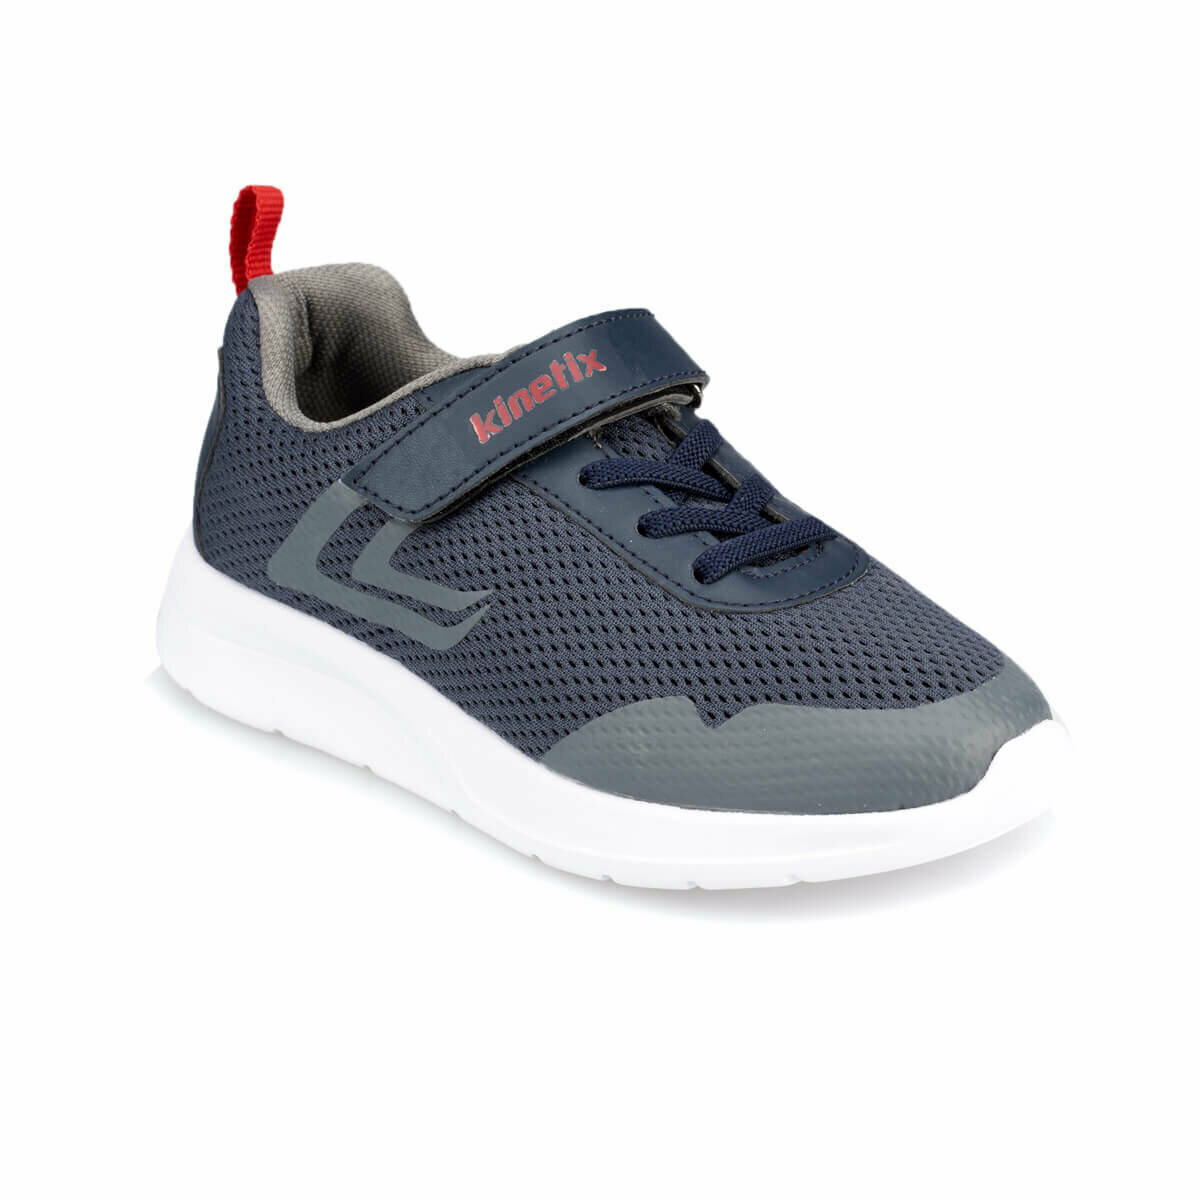 FLO BLANG Navy Blue Male Child Hiking Shoes KINETIX